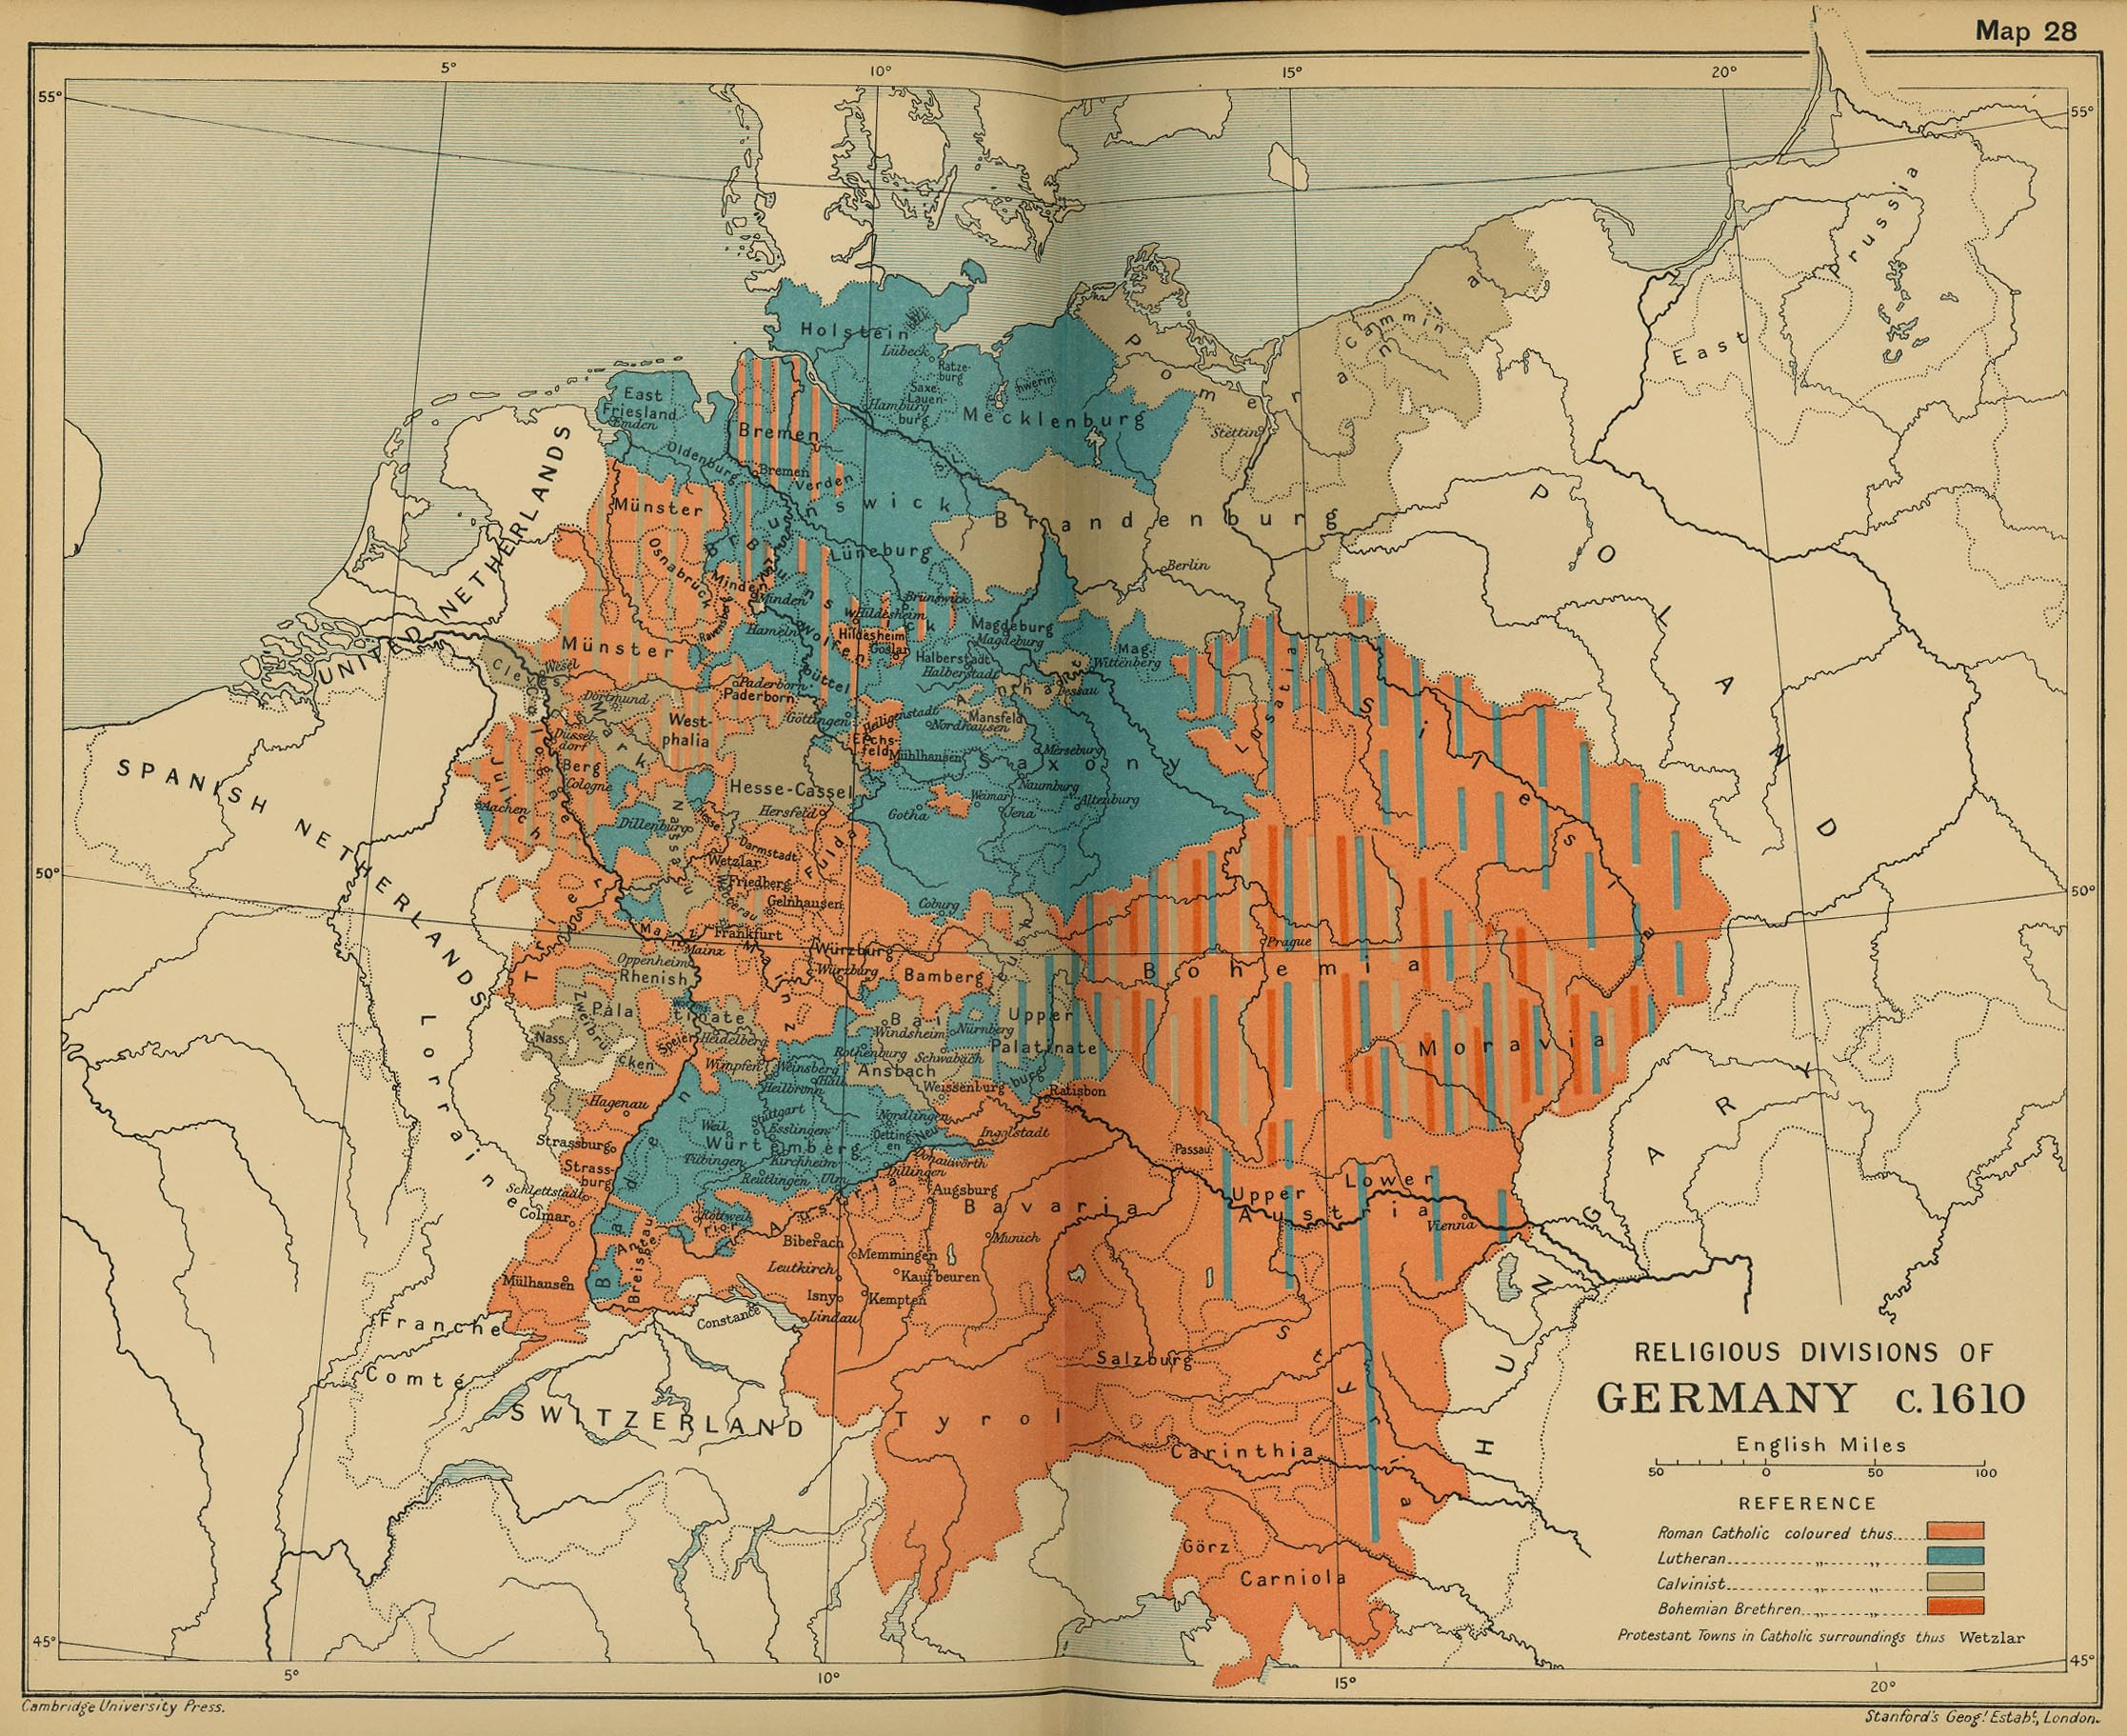 map 27 religious divisions of germany c